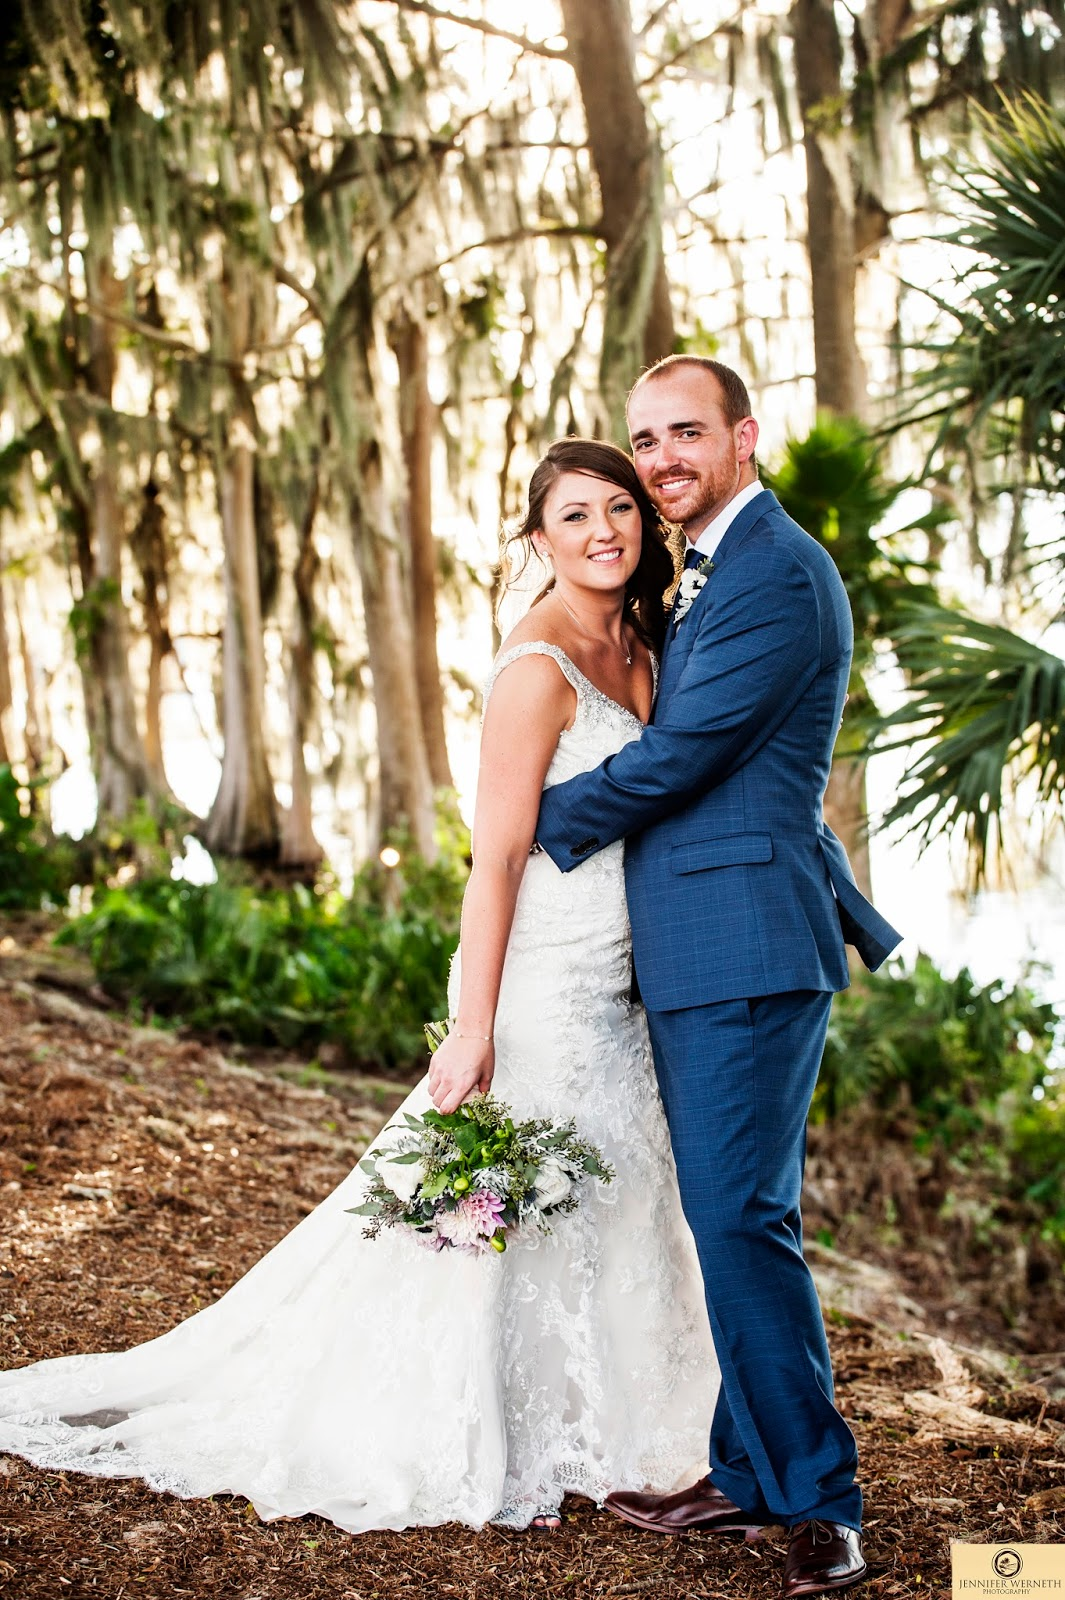 Formal photo of bride and groom in Florida forest